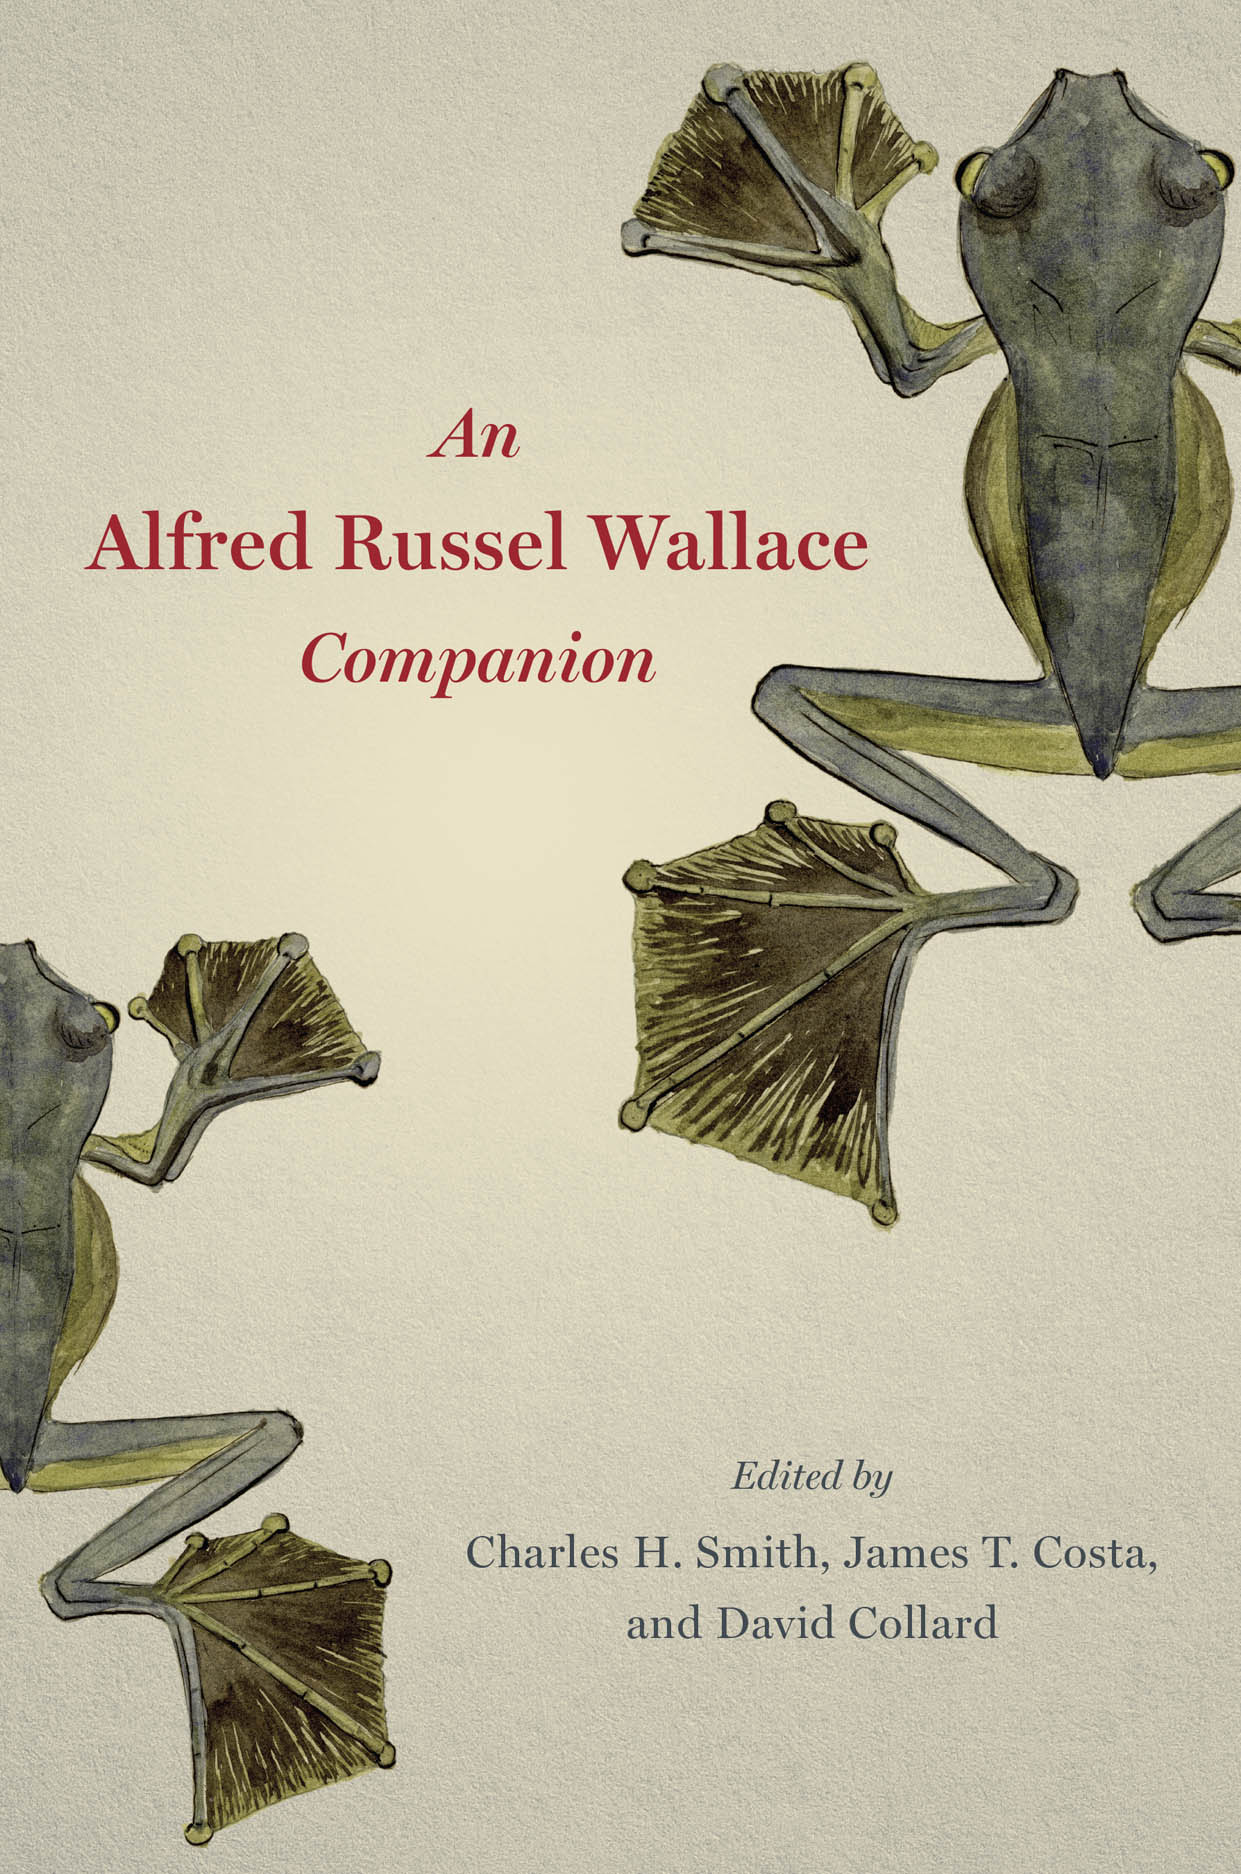 An Alfred Russel Wallace Companion